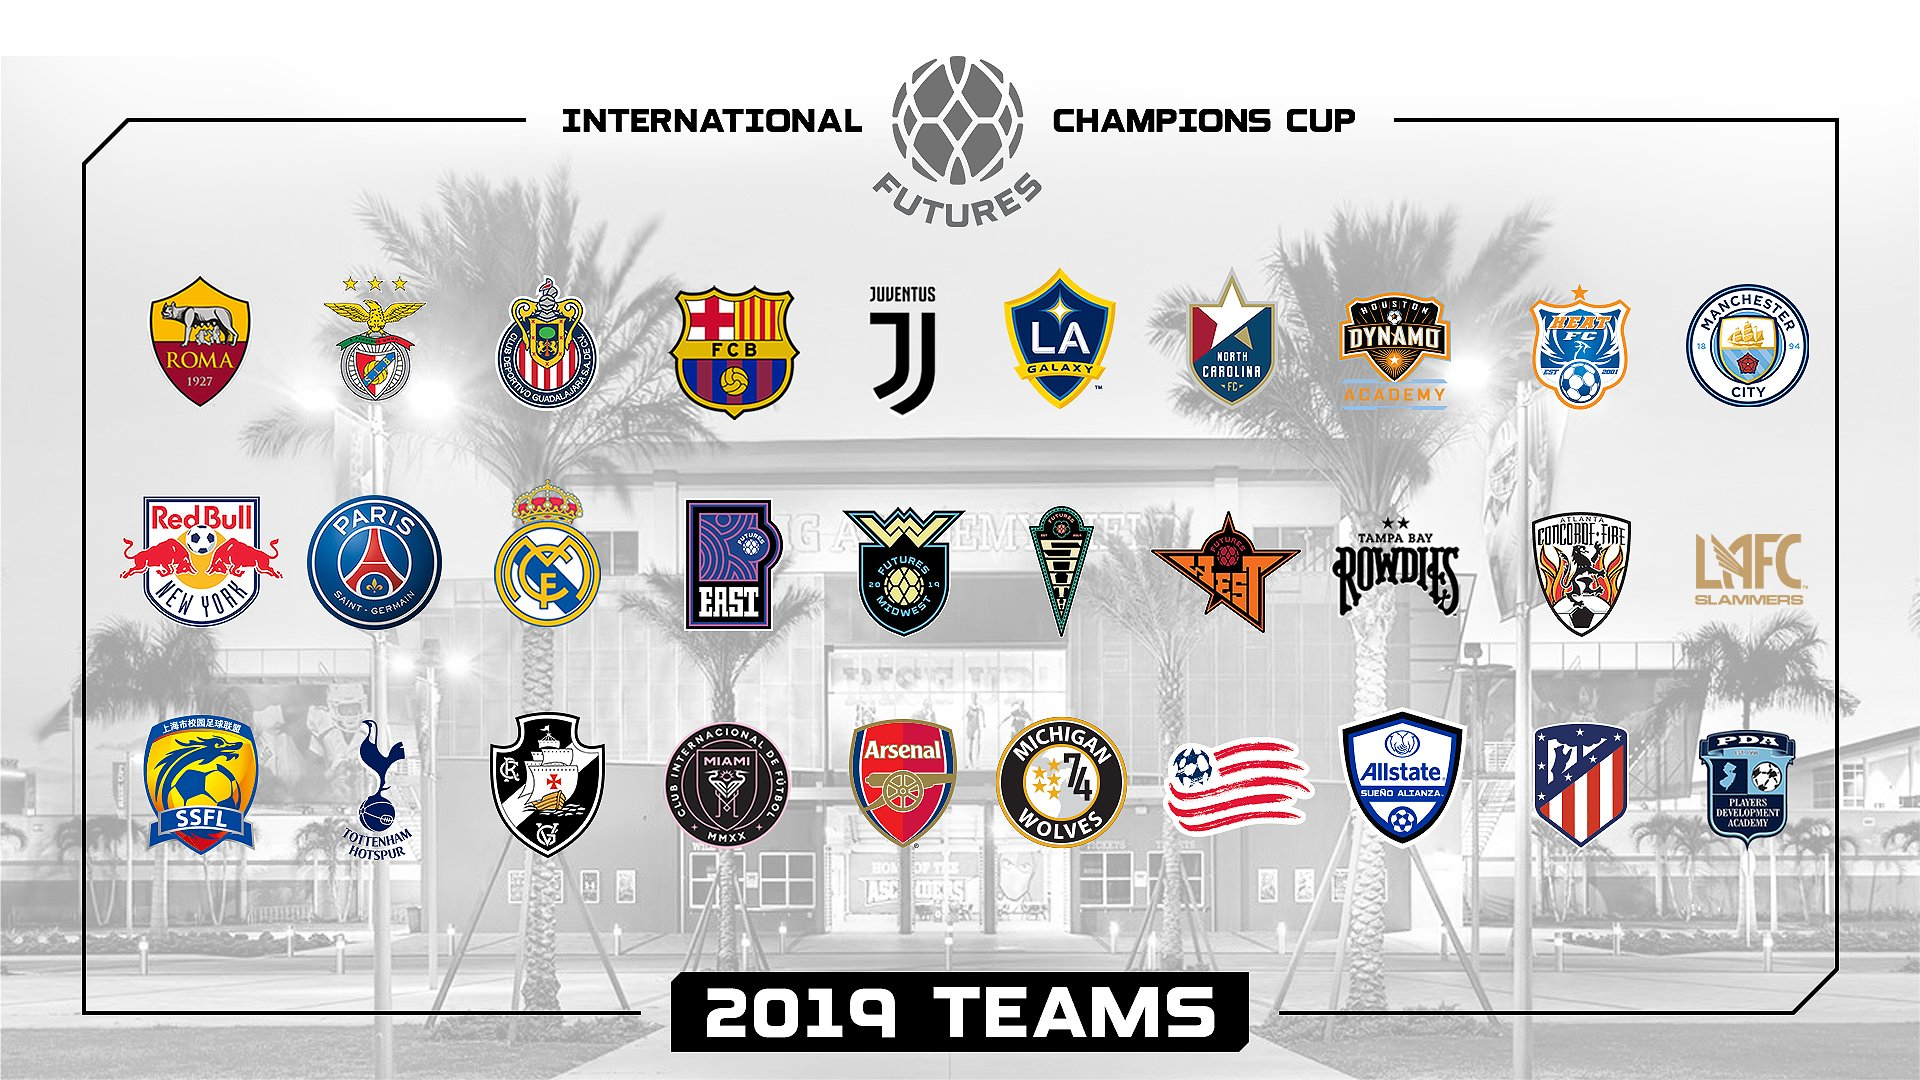 ICC International Champions Cup Futures